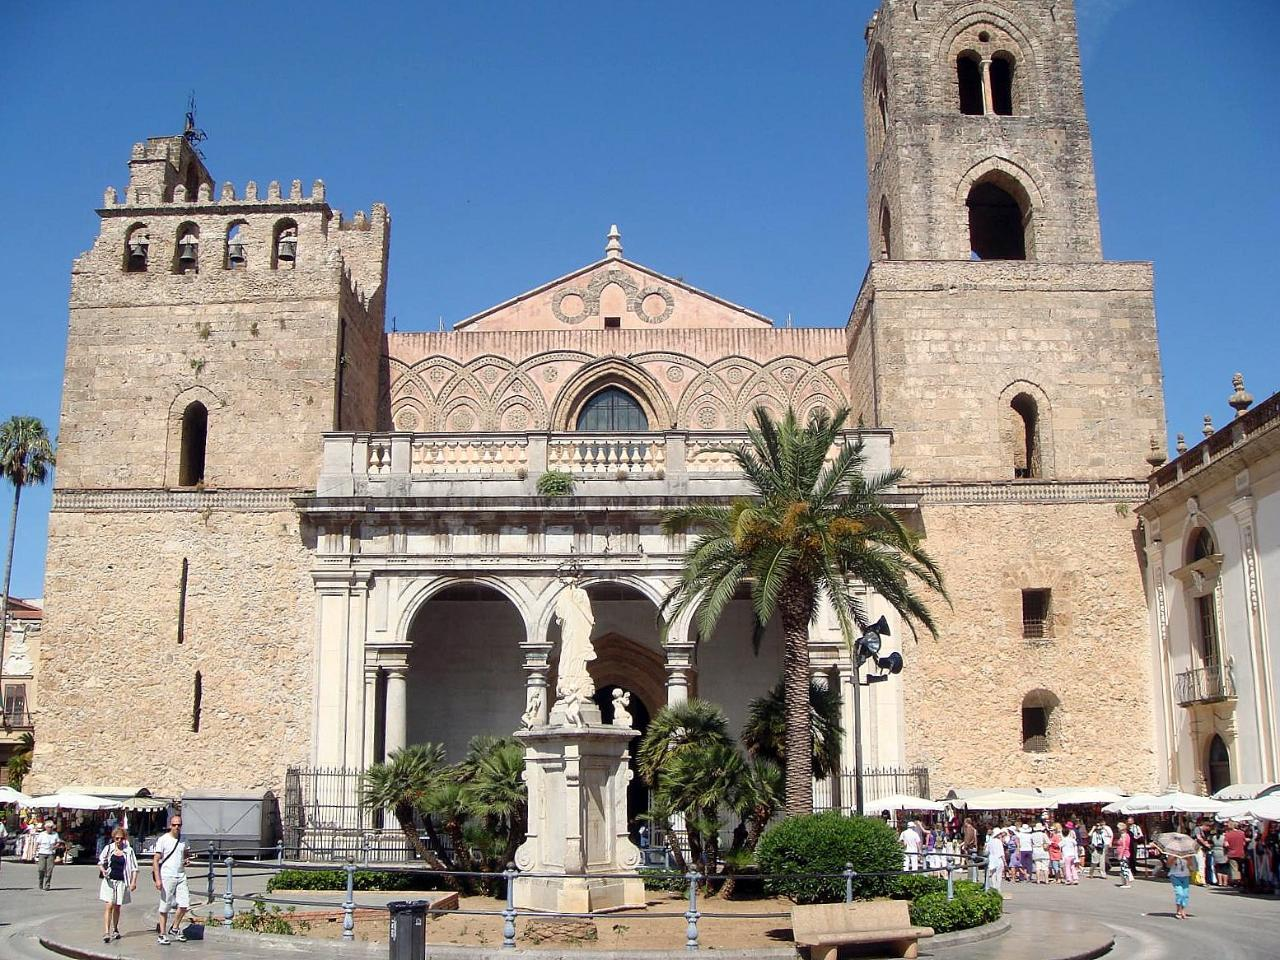 Half Day Tour to Monreale & Palermo from Palermo Port